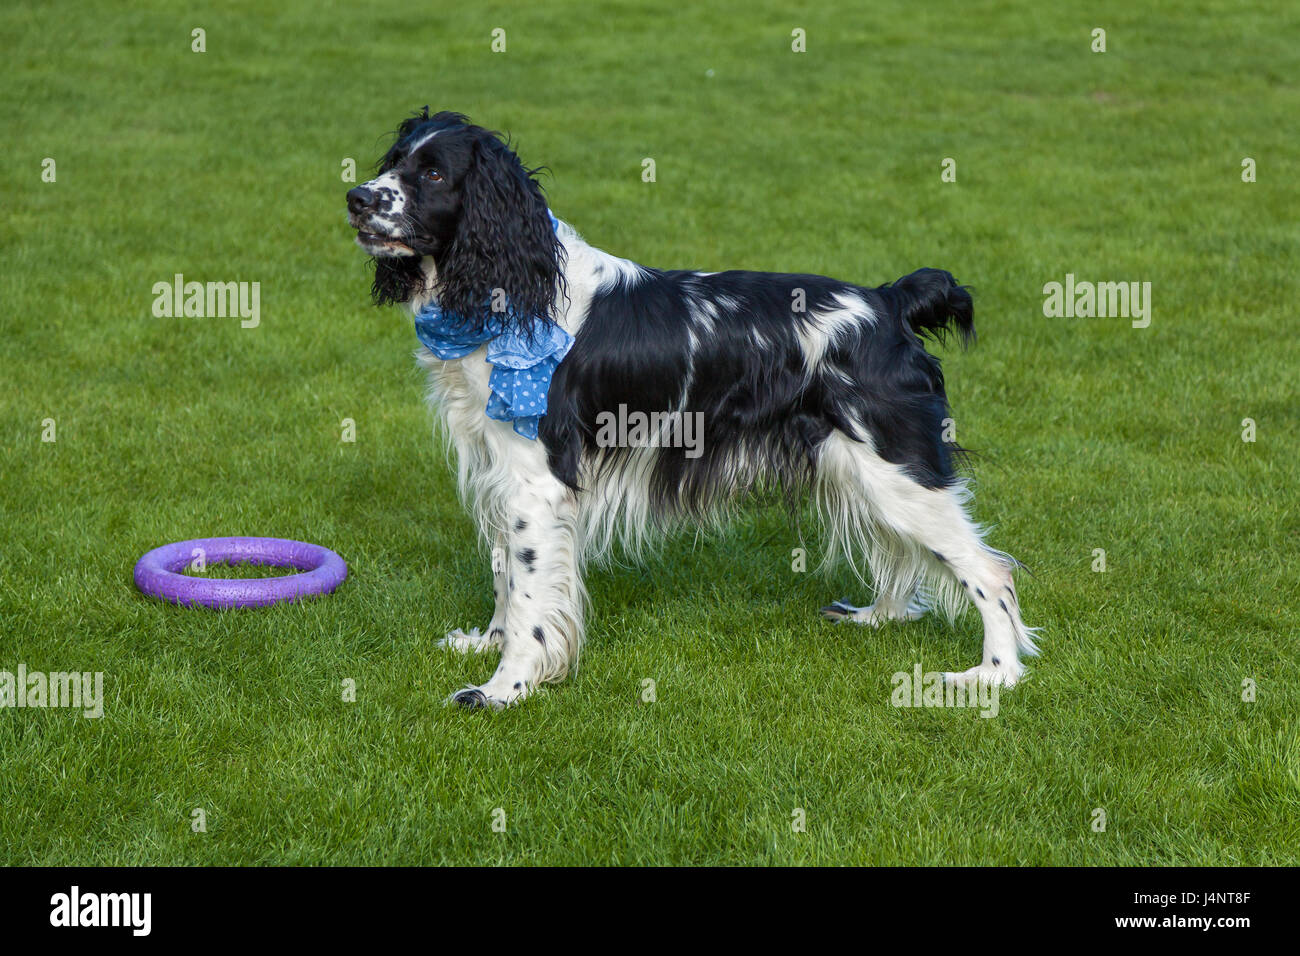 the dog of breed Cocker Spaniel stands on a green grass, blackly white Cocker Spaniel Stock Photo